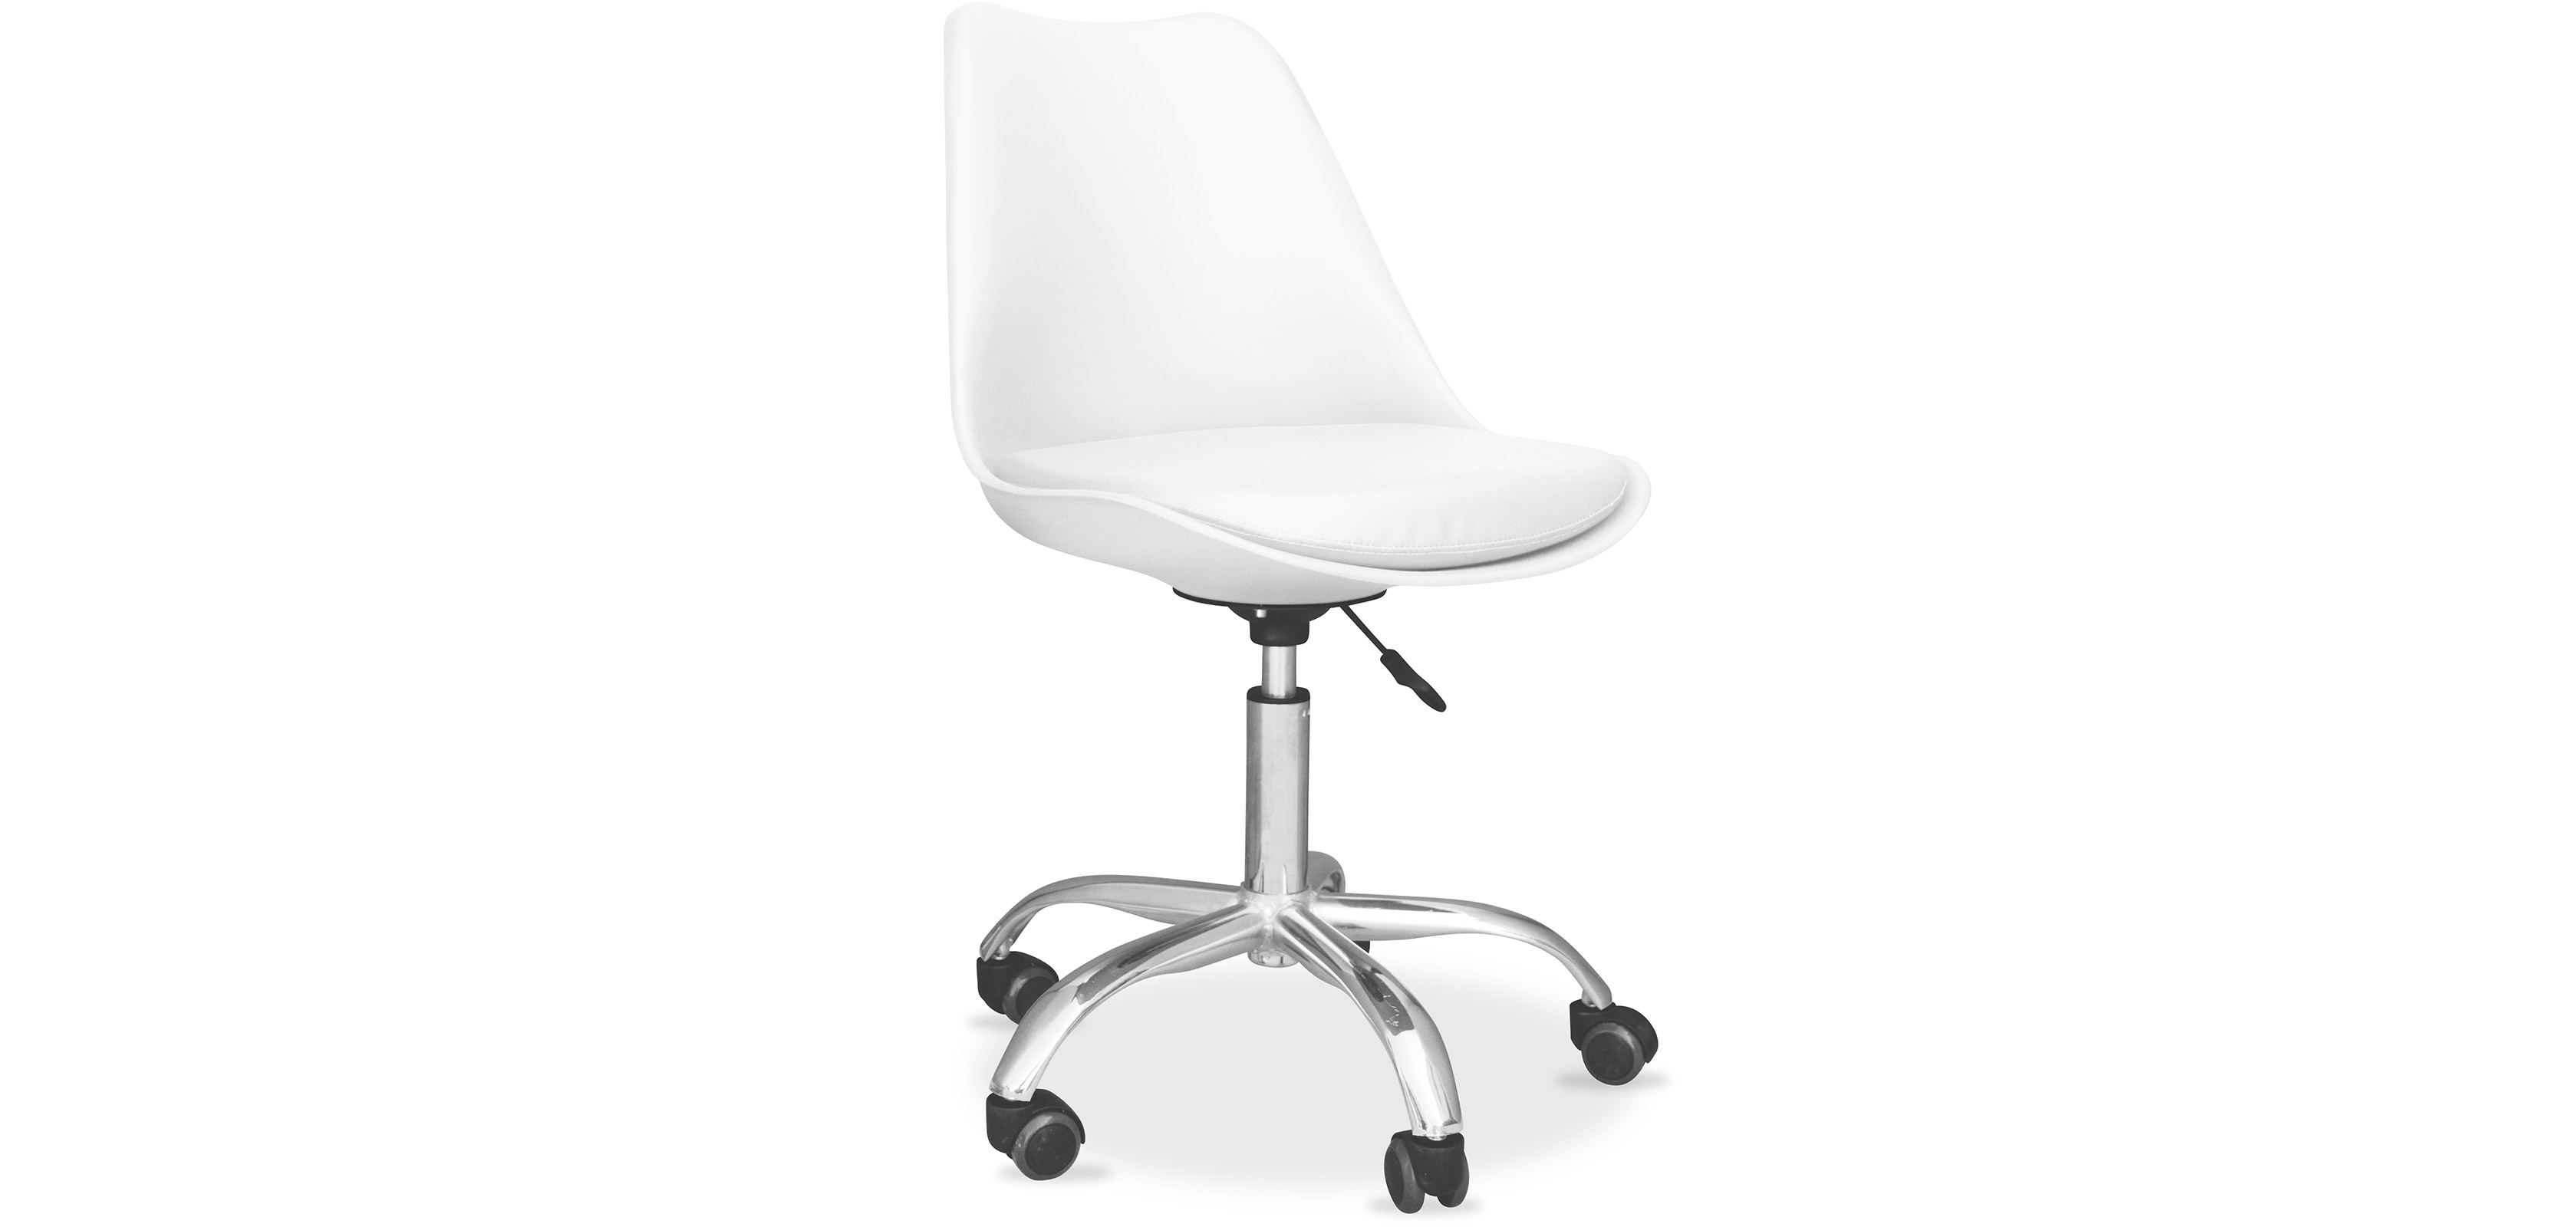 Buy Tulip swivel office chair with wheels White 58487 - in the EU